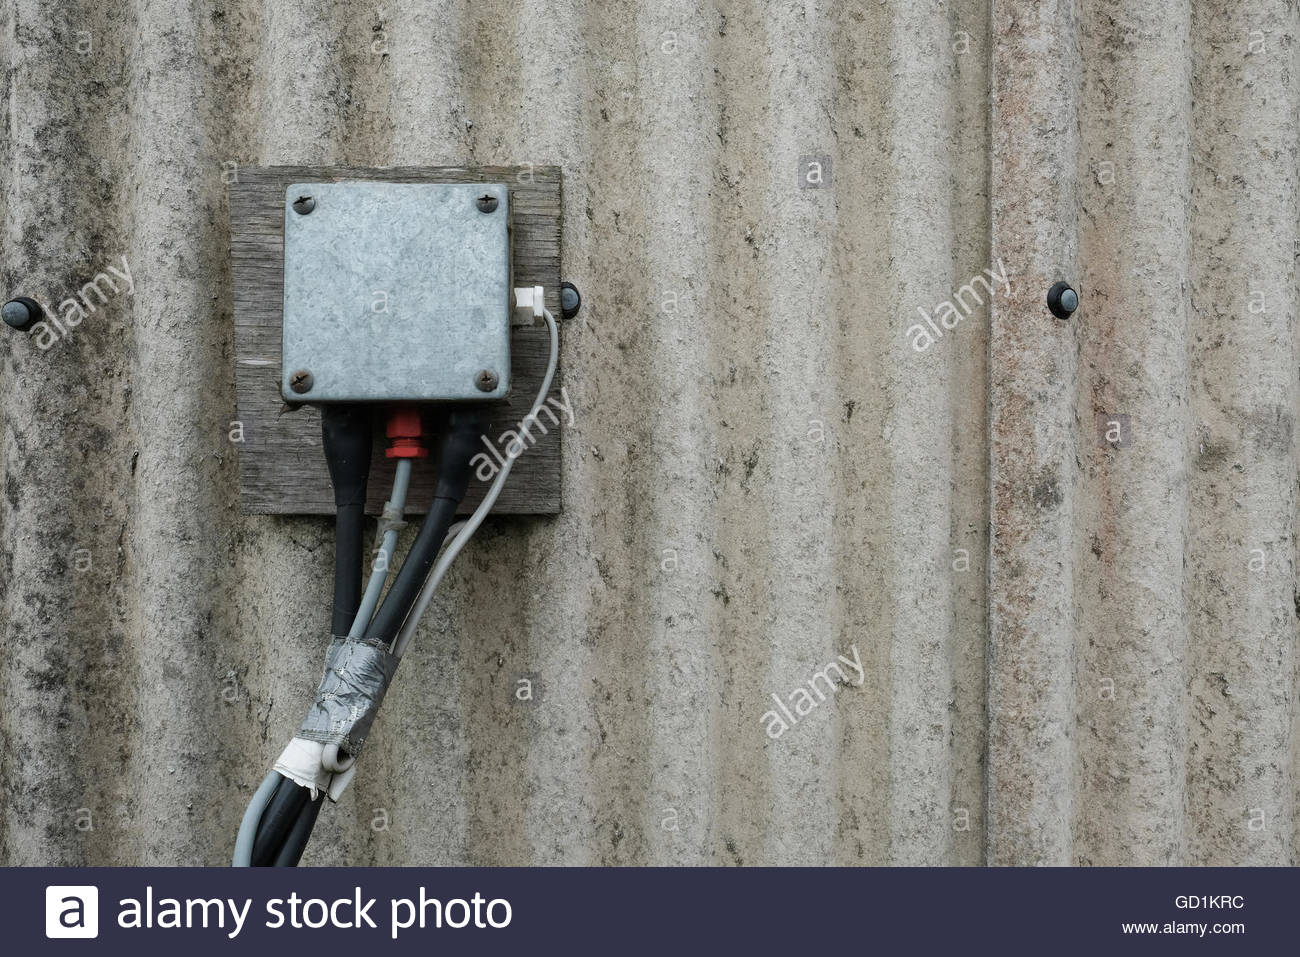 Electrical Junction Box Stock Photos Home Wiring Weather Proof As Seen On The Wall Of An Agricultural Building